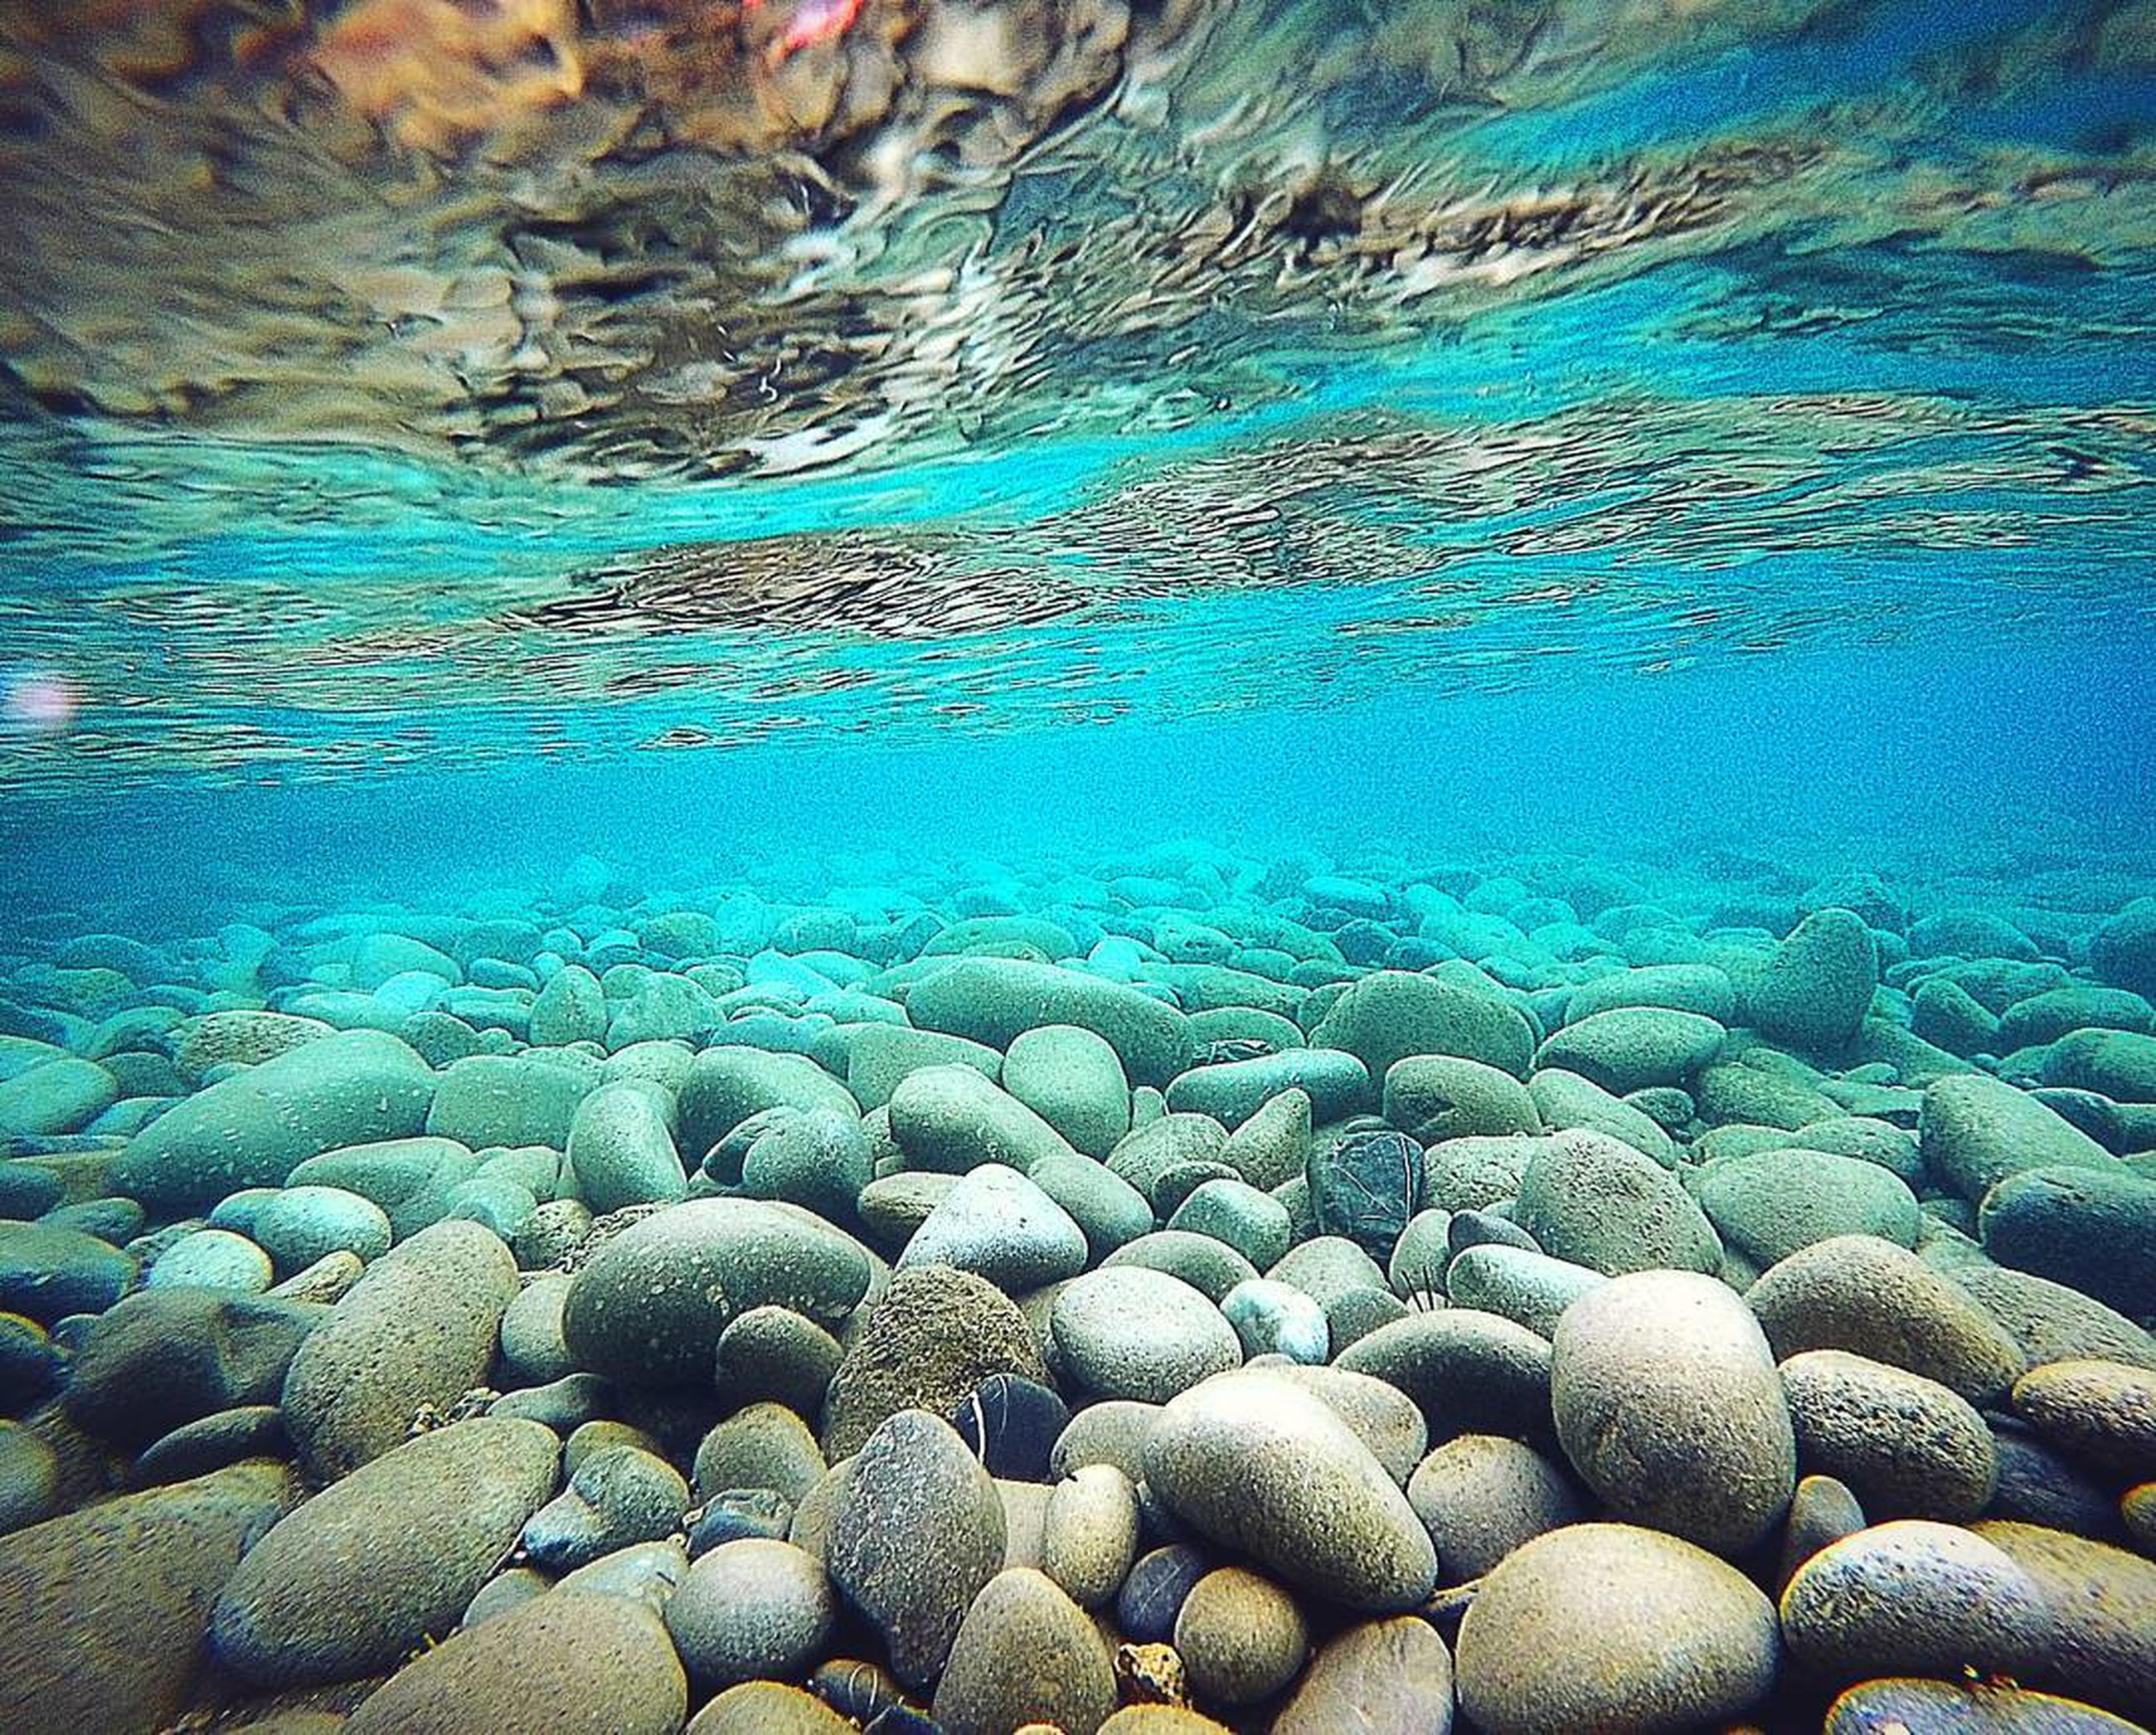 water, blue, pebble, nature, vacations, purity, rippled, abundance, turquoise colored, riverbank, sea, water surface, day, clear, tranquility, beauty in nature, non-urban scene, outdoors, surface level